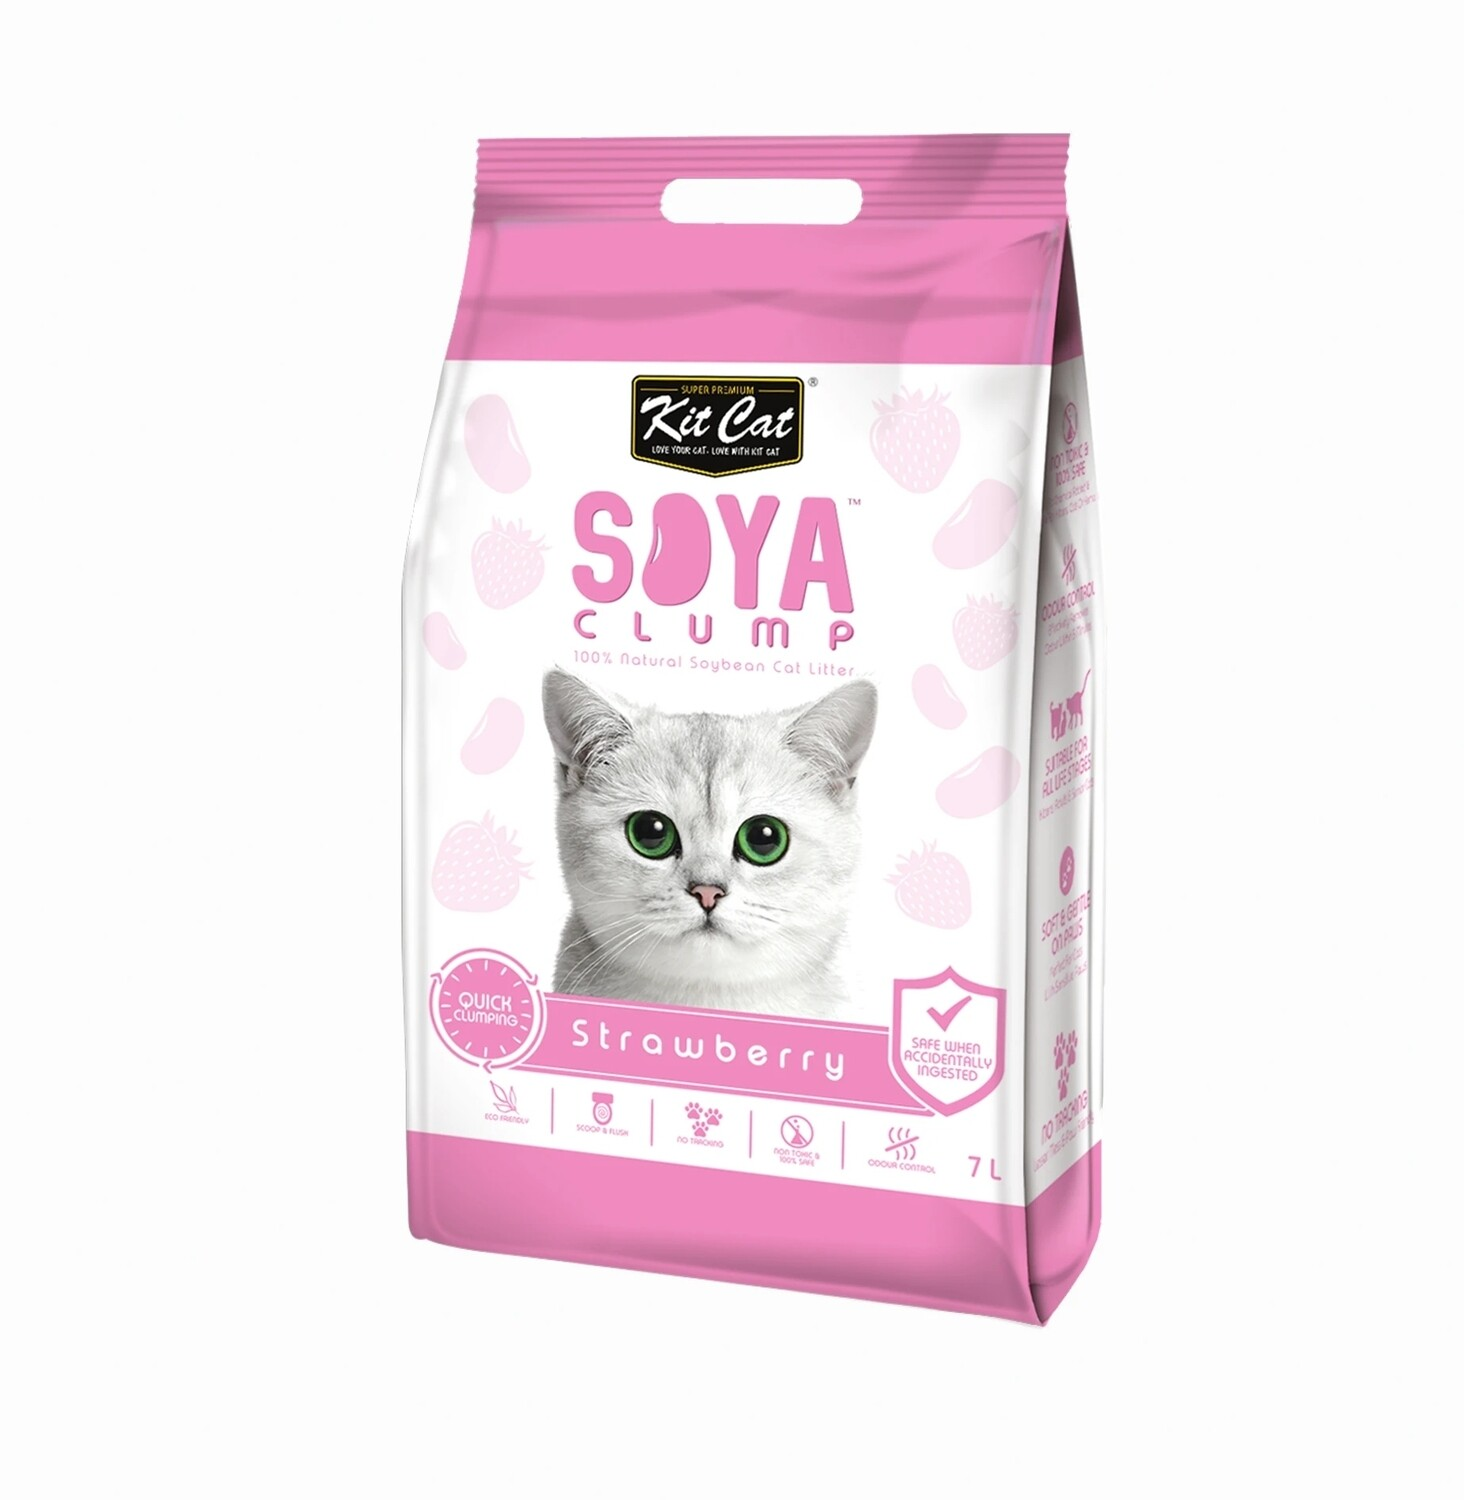 Kit Cat Soya Clump Cat Litter 2.8kg